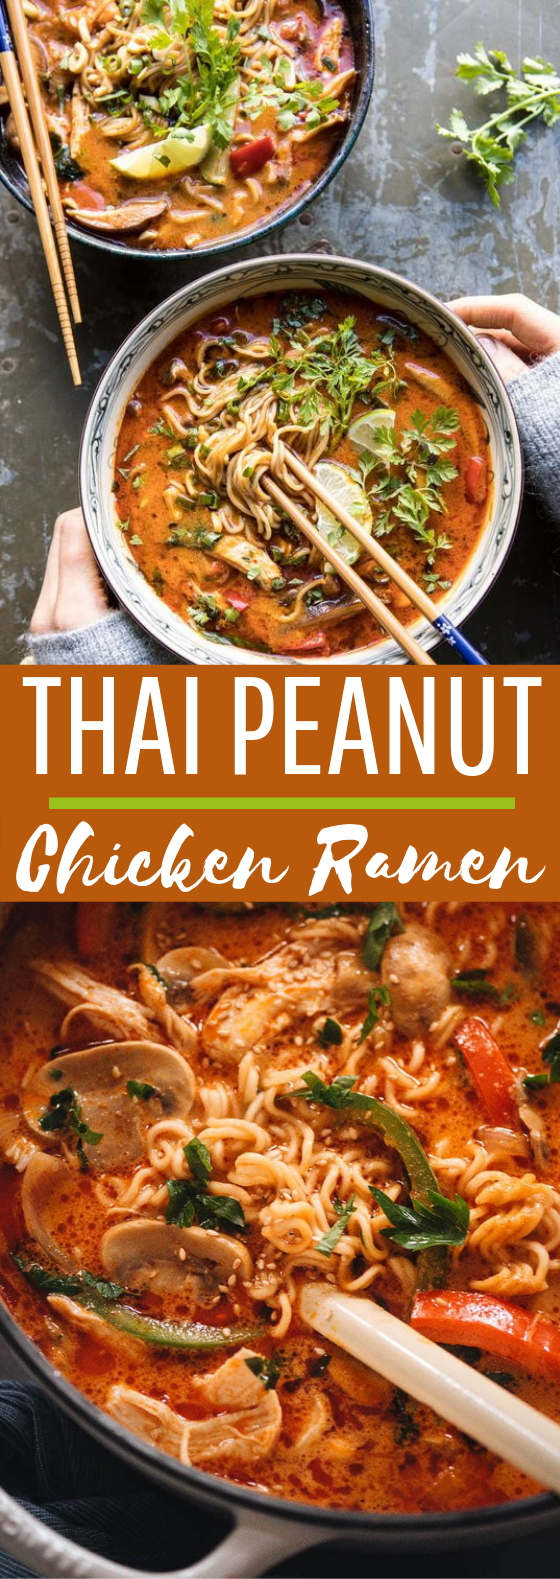 30 Minute Thai Peanut Chicken Ramen #dinner #noodles